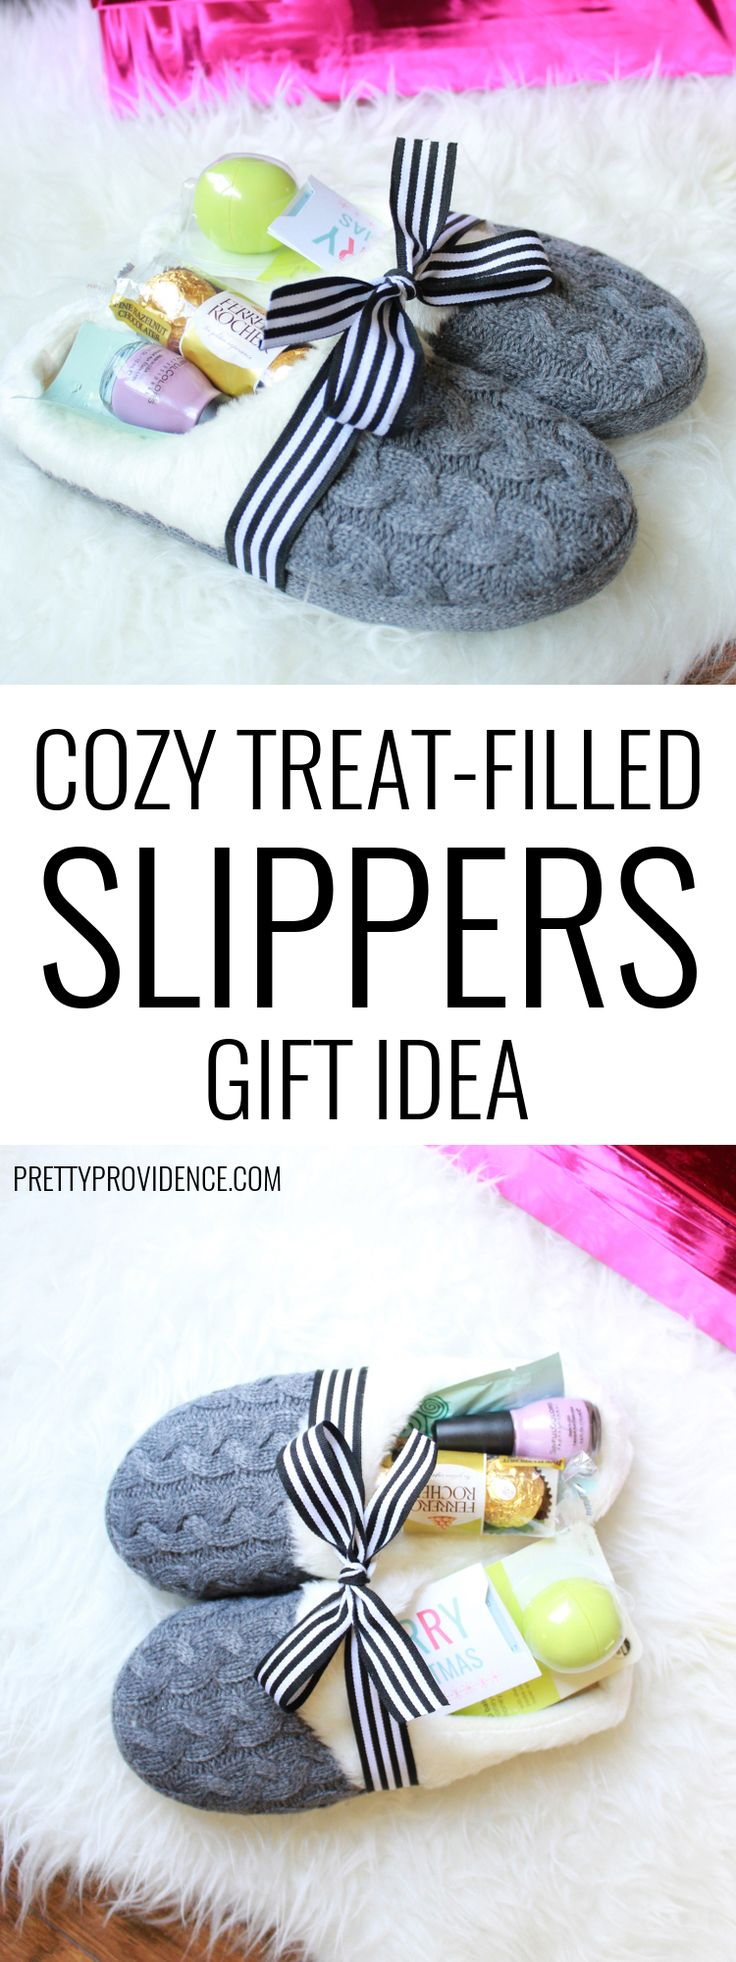 Slippers make a great gift and they are even better when filled with little…